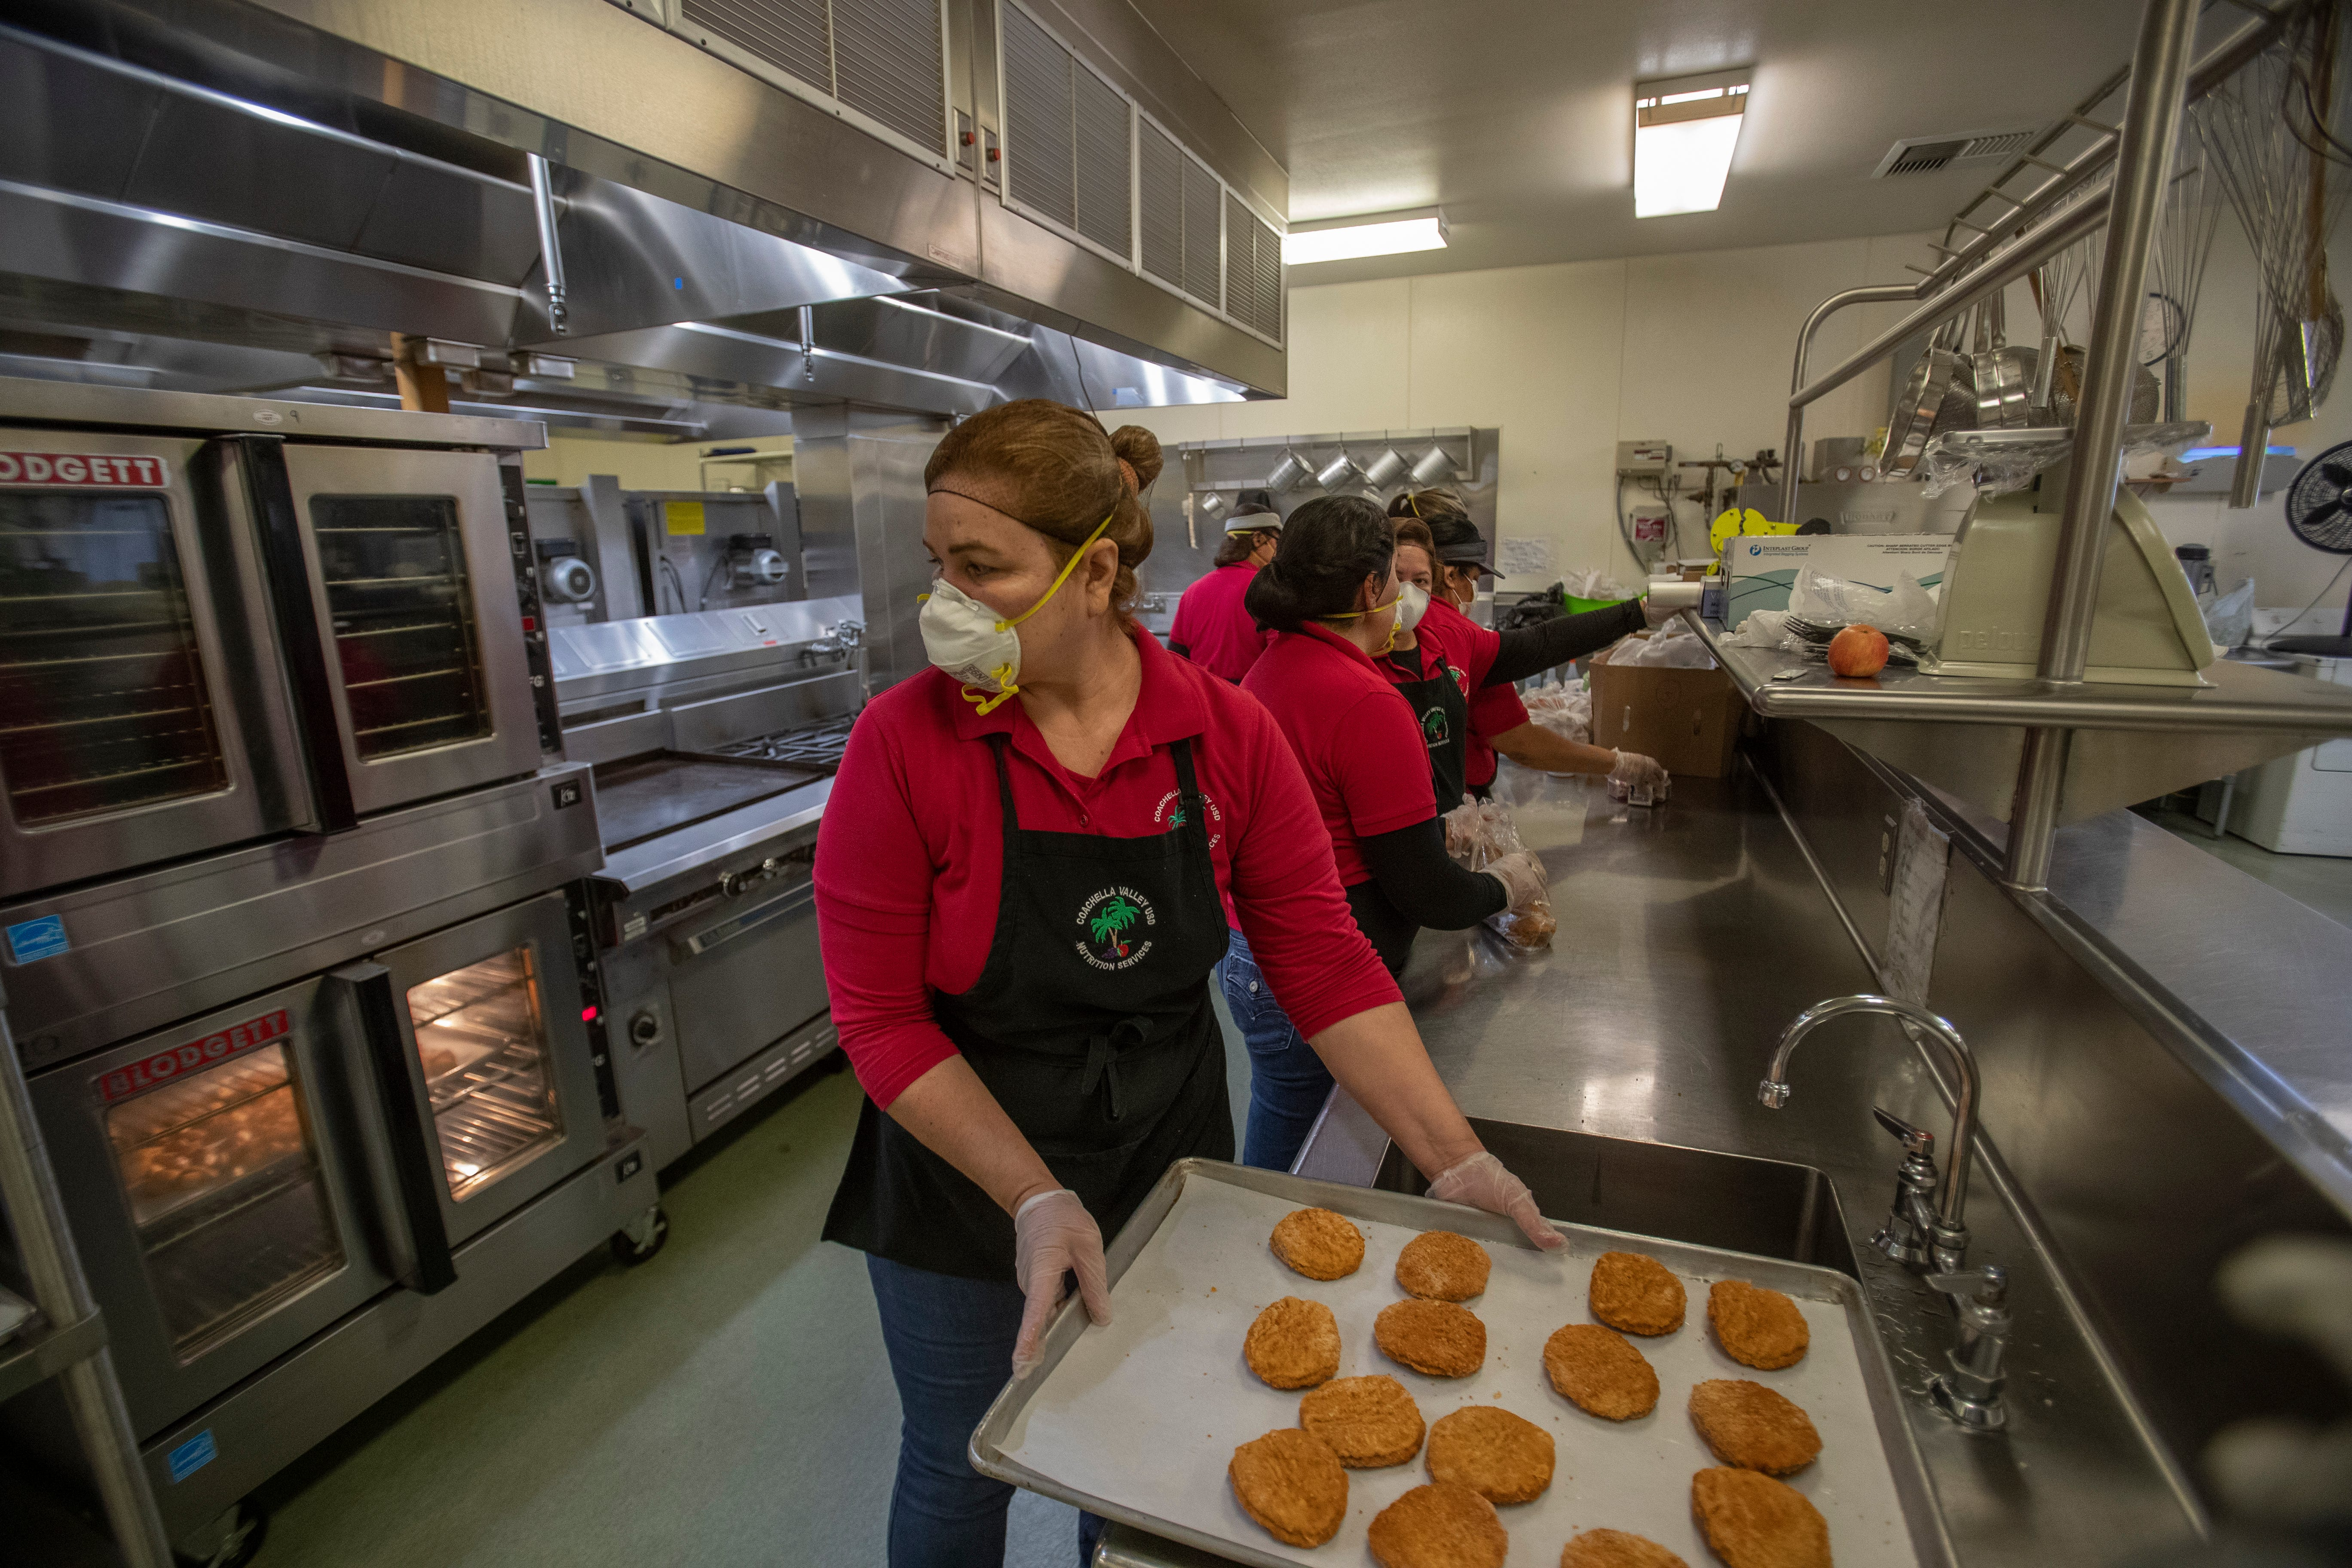 Food is prepared by Coachella Valley Unified School District employees to be load up on buses and distributed to students in the eastern Coachella Valley.